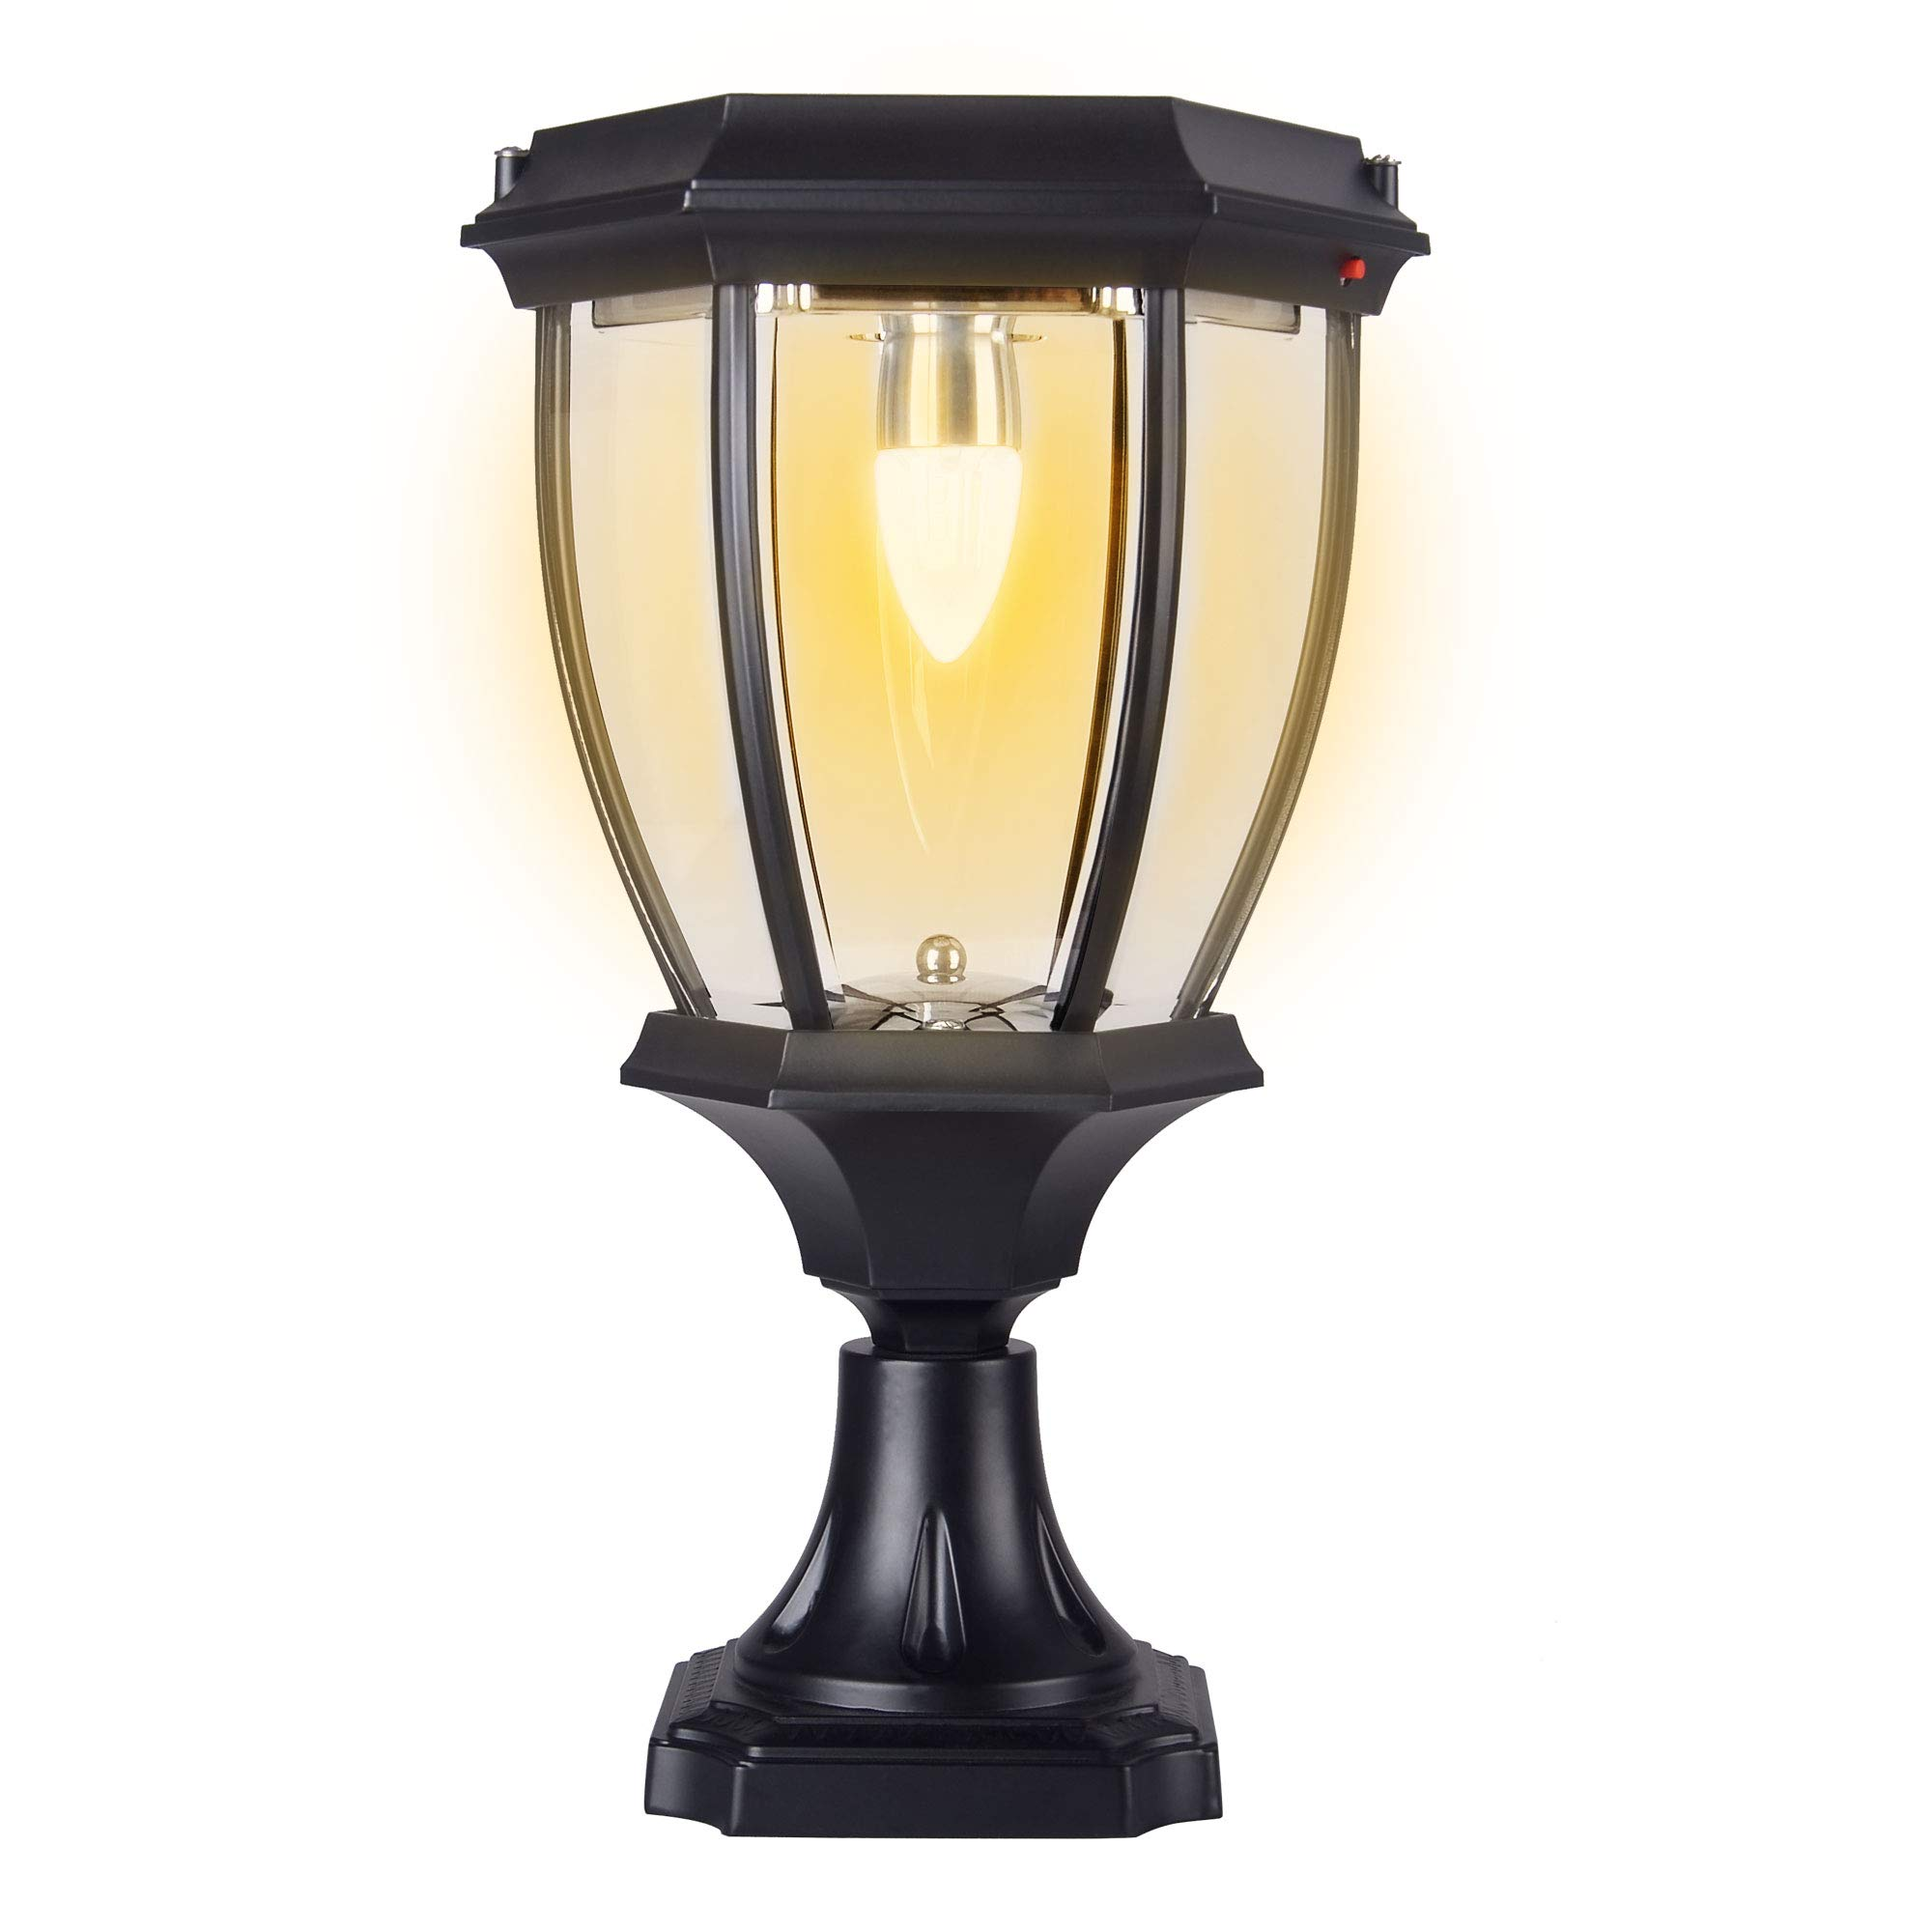 Kendal Large Outdoor Solar Powered LED Light Warm White Pillar Lamp SL-8407 by Kendal